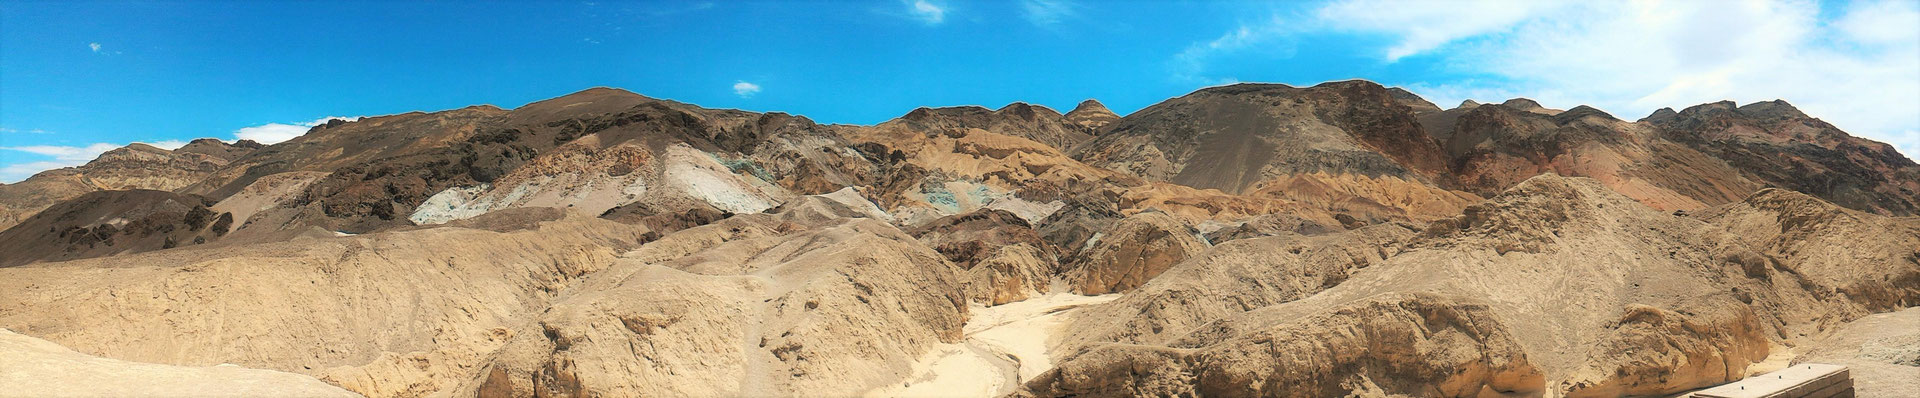 PANORAMIC ARTISTS PALETTE SUR ARTISTE DRIVE DEATH VALLEY  NP  CALIFORNIE